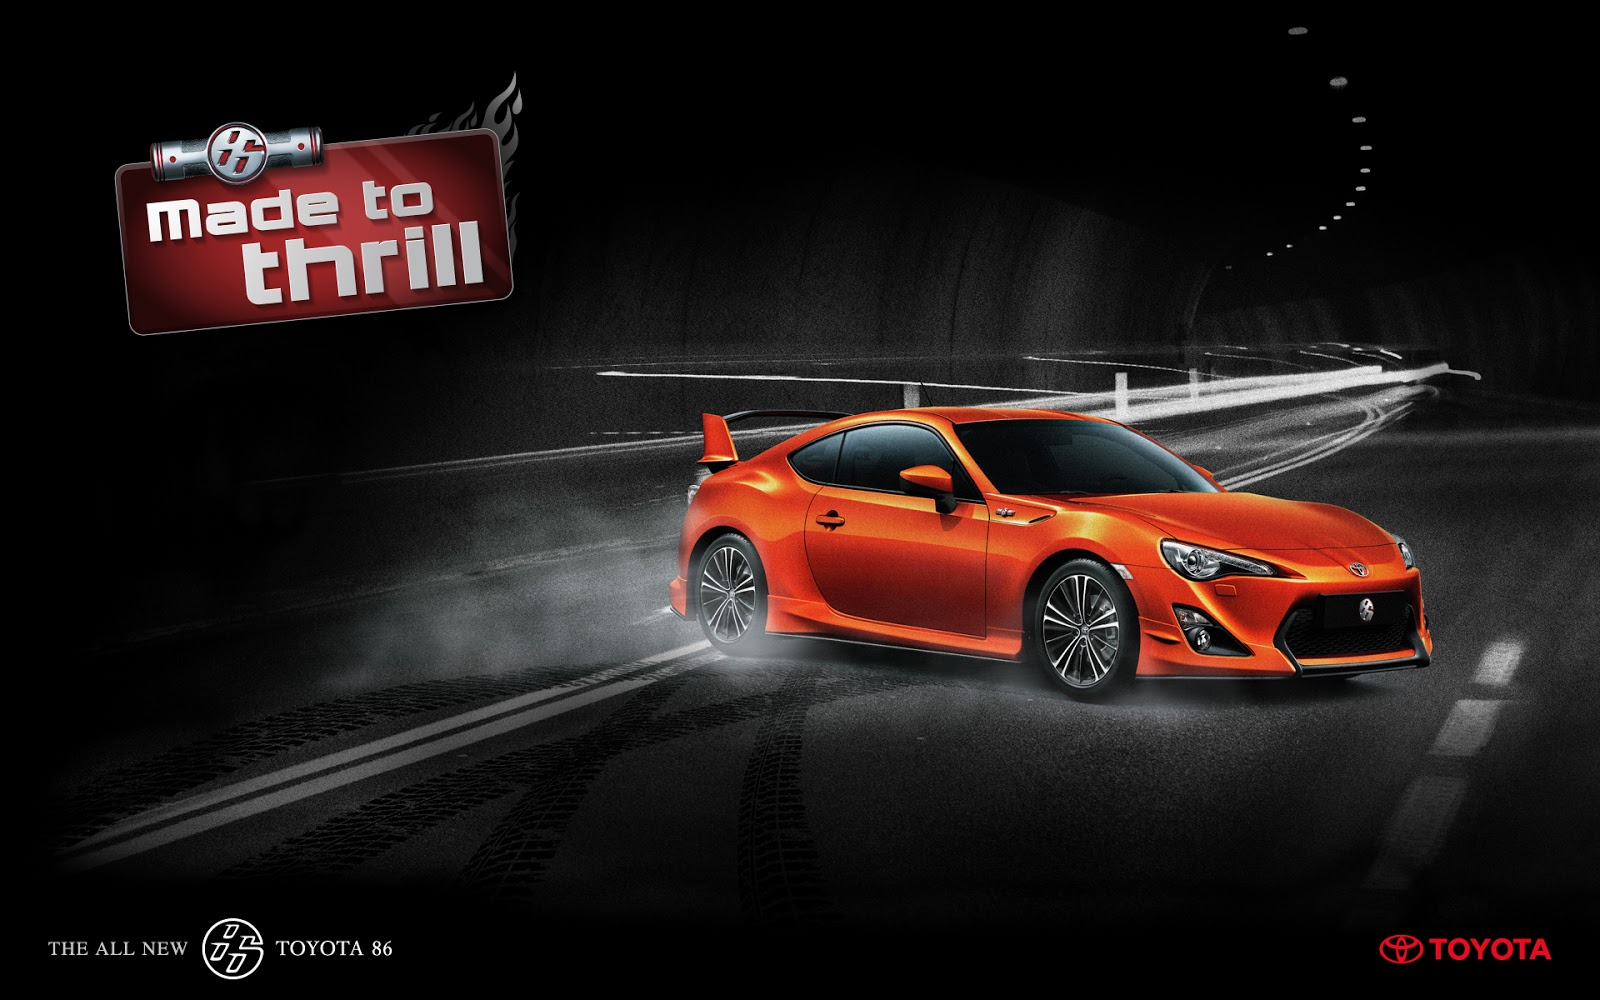 http://2.bp.blogspot.com/-BH9xZvdarU0/UIfjWUy9XQI/AAAAAAAAFcY/b_kXbG5nxSU/s1600/Toyota-86-Subaru-BRZ-Scion+FR-S-sports+car-coupe-exterior-view-RED-front-side-2.jpg